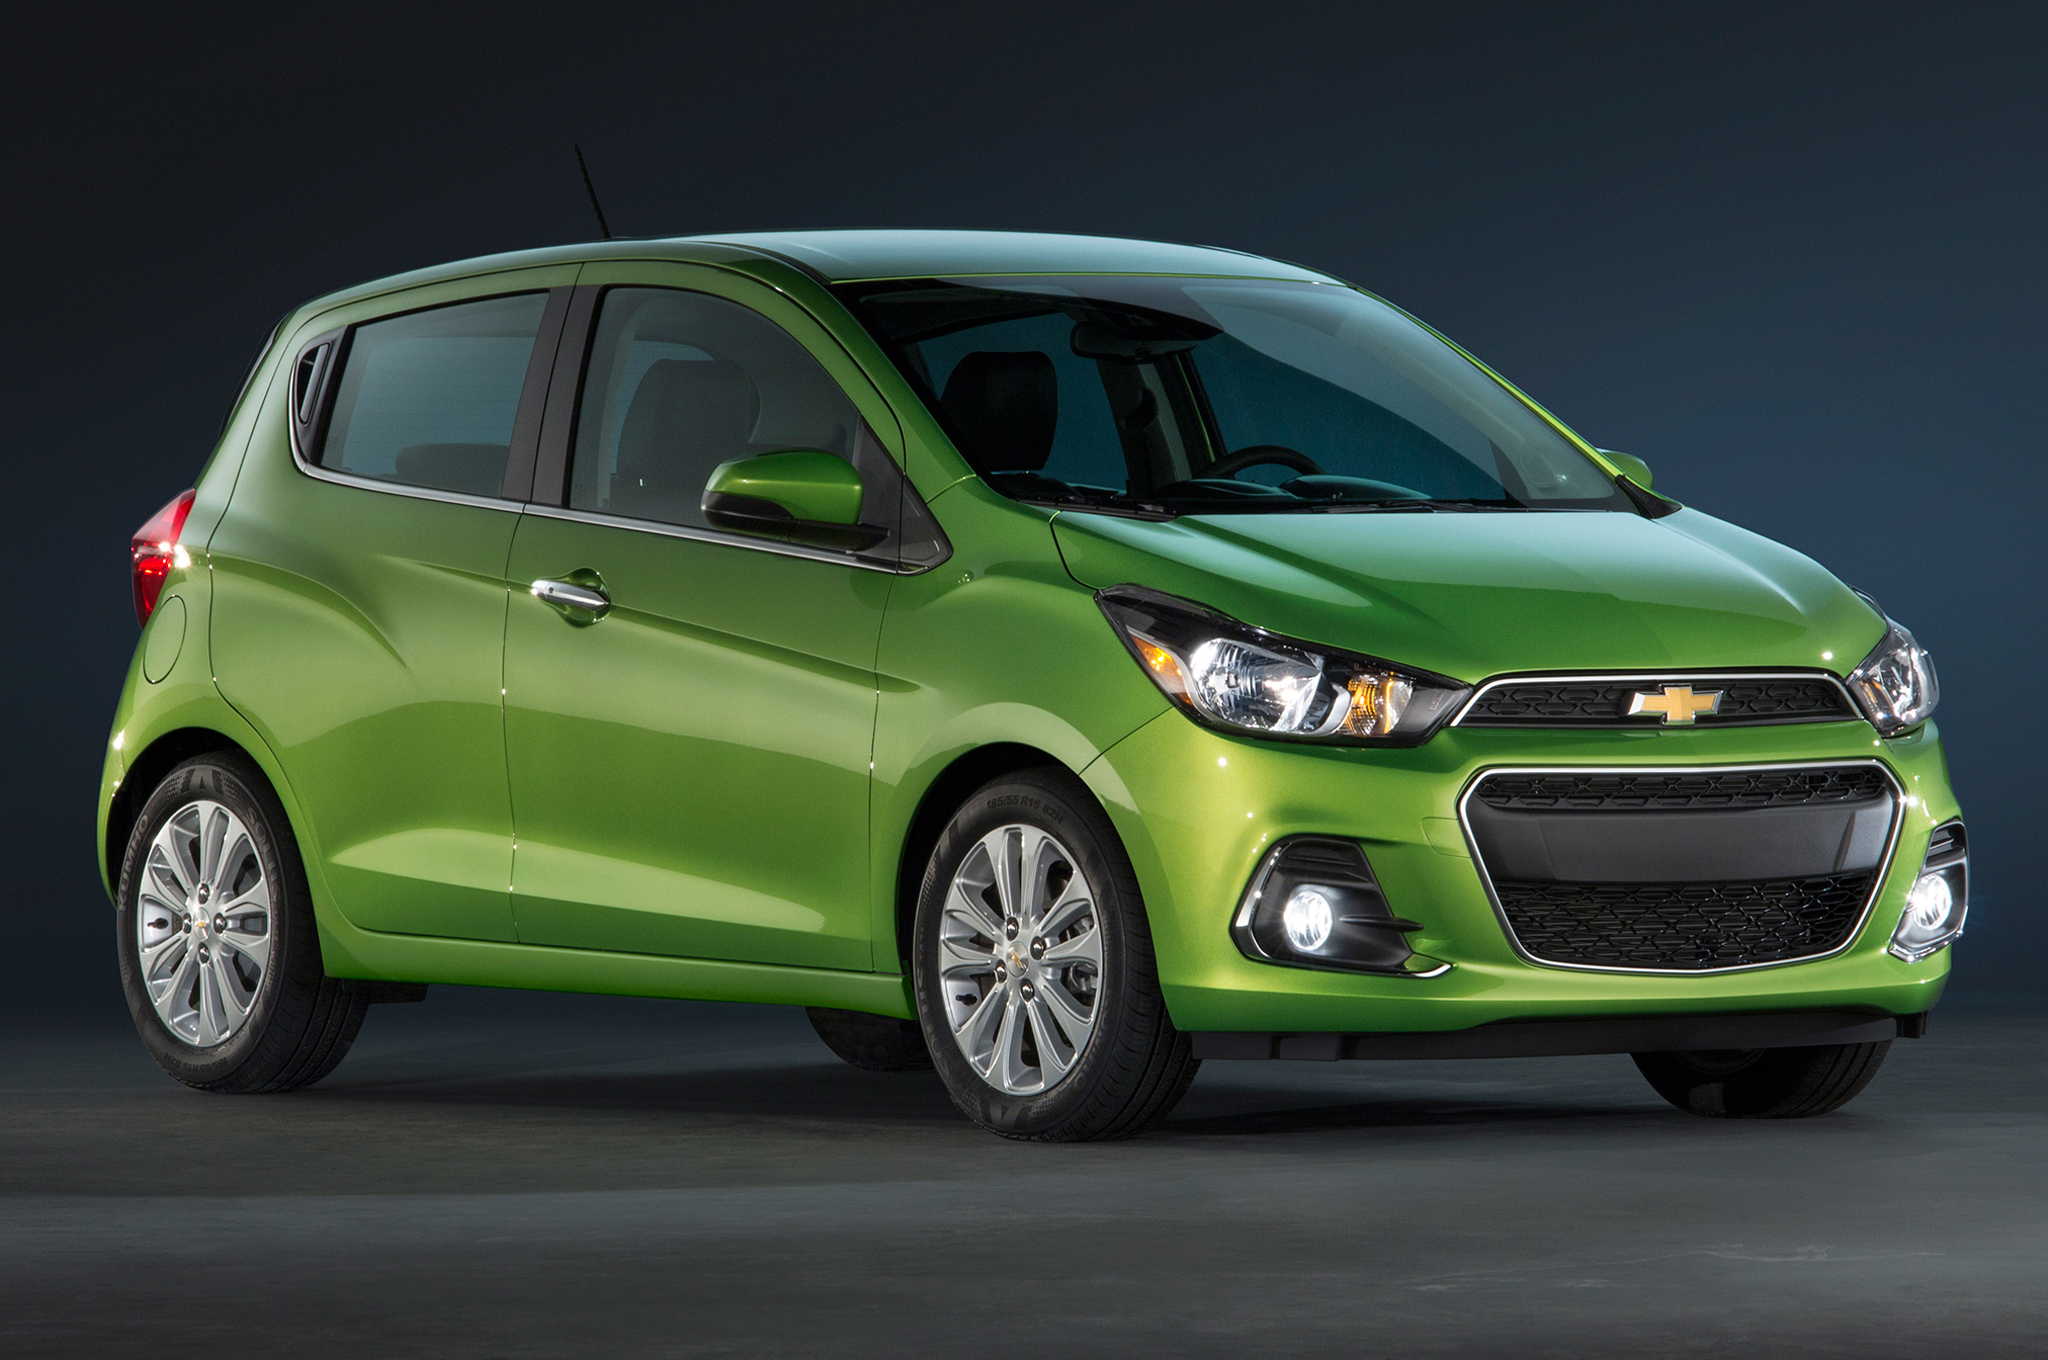 2016 chevrolet spark first look motortrend2016 chevrolet spark first look [ 2048 x 1360 Pixel ]